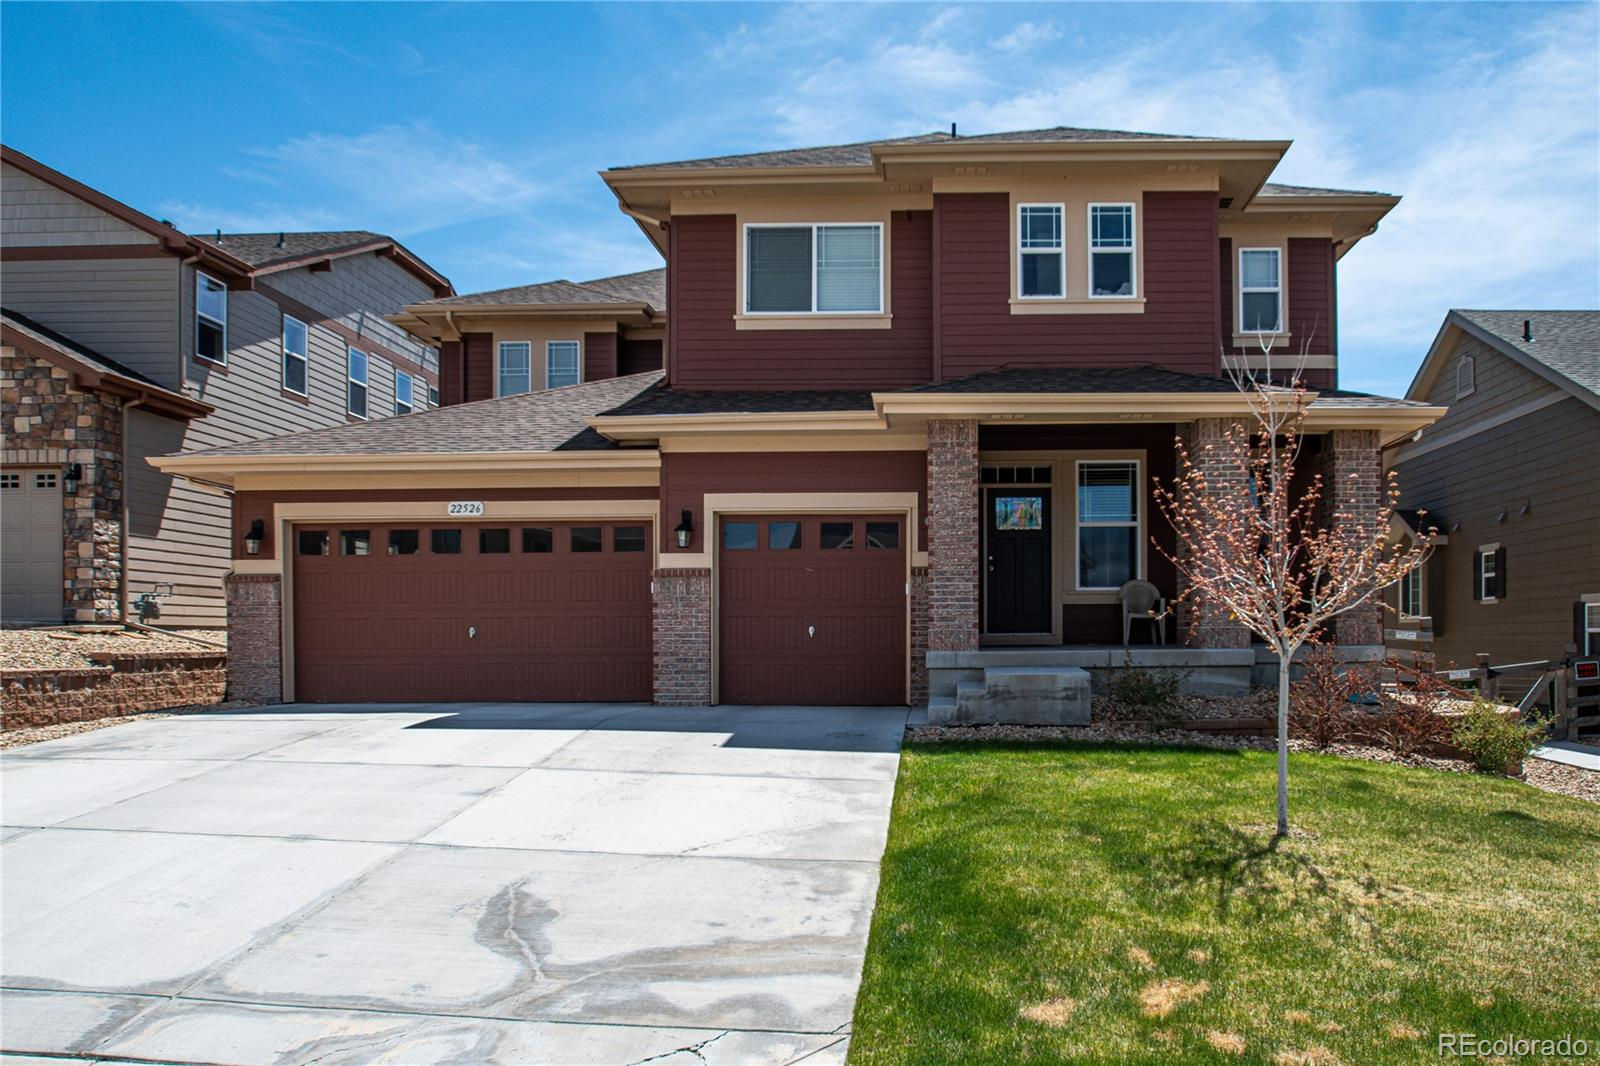 22526 E Union Place Property Photo - Aurora, CO real estate listing